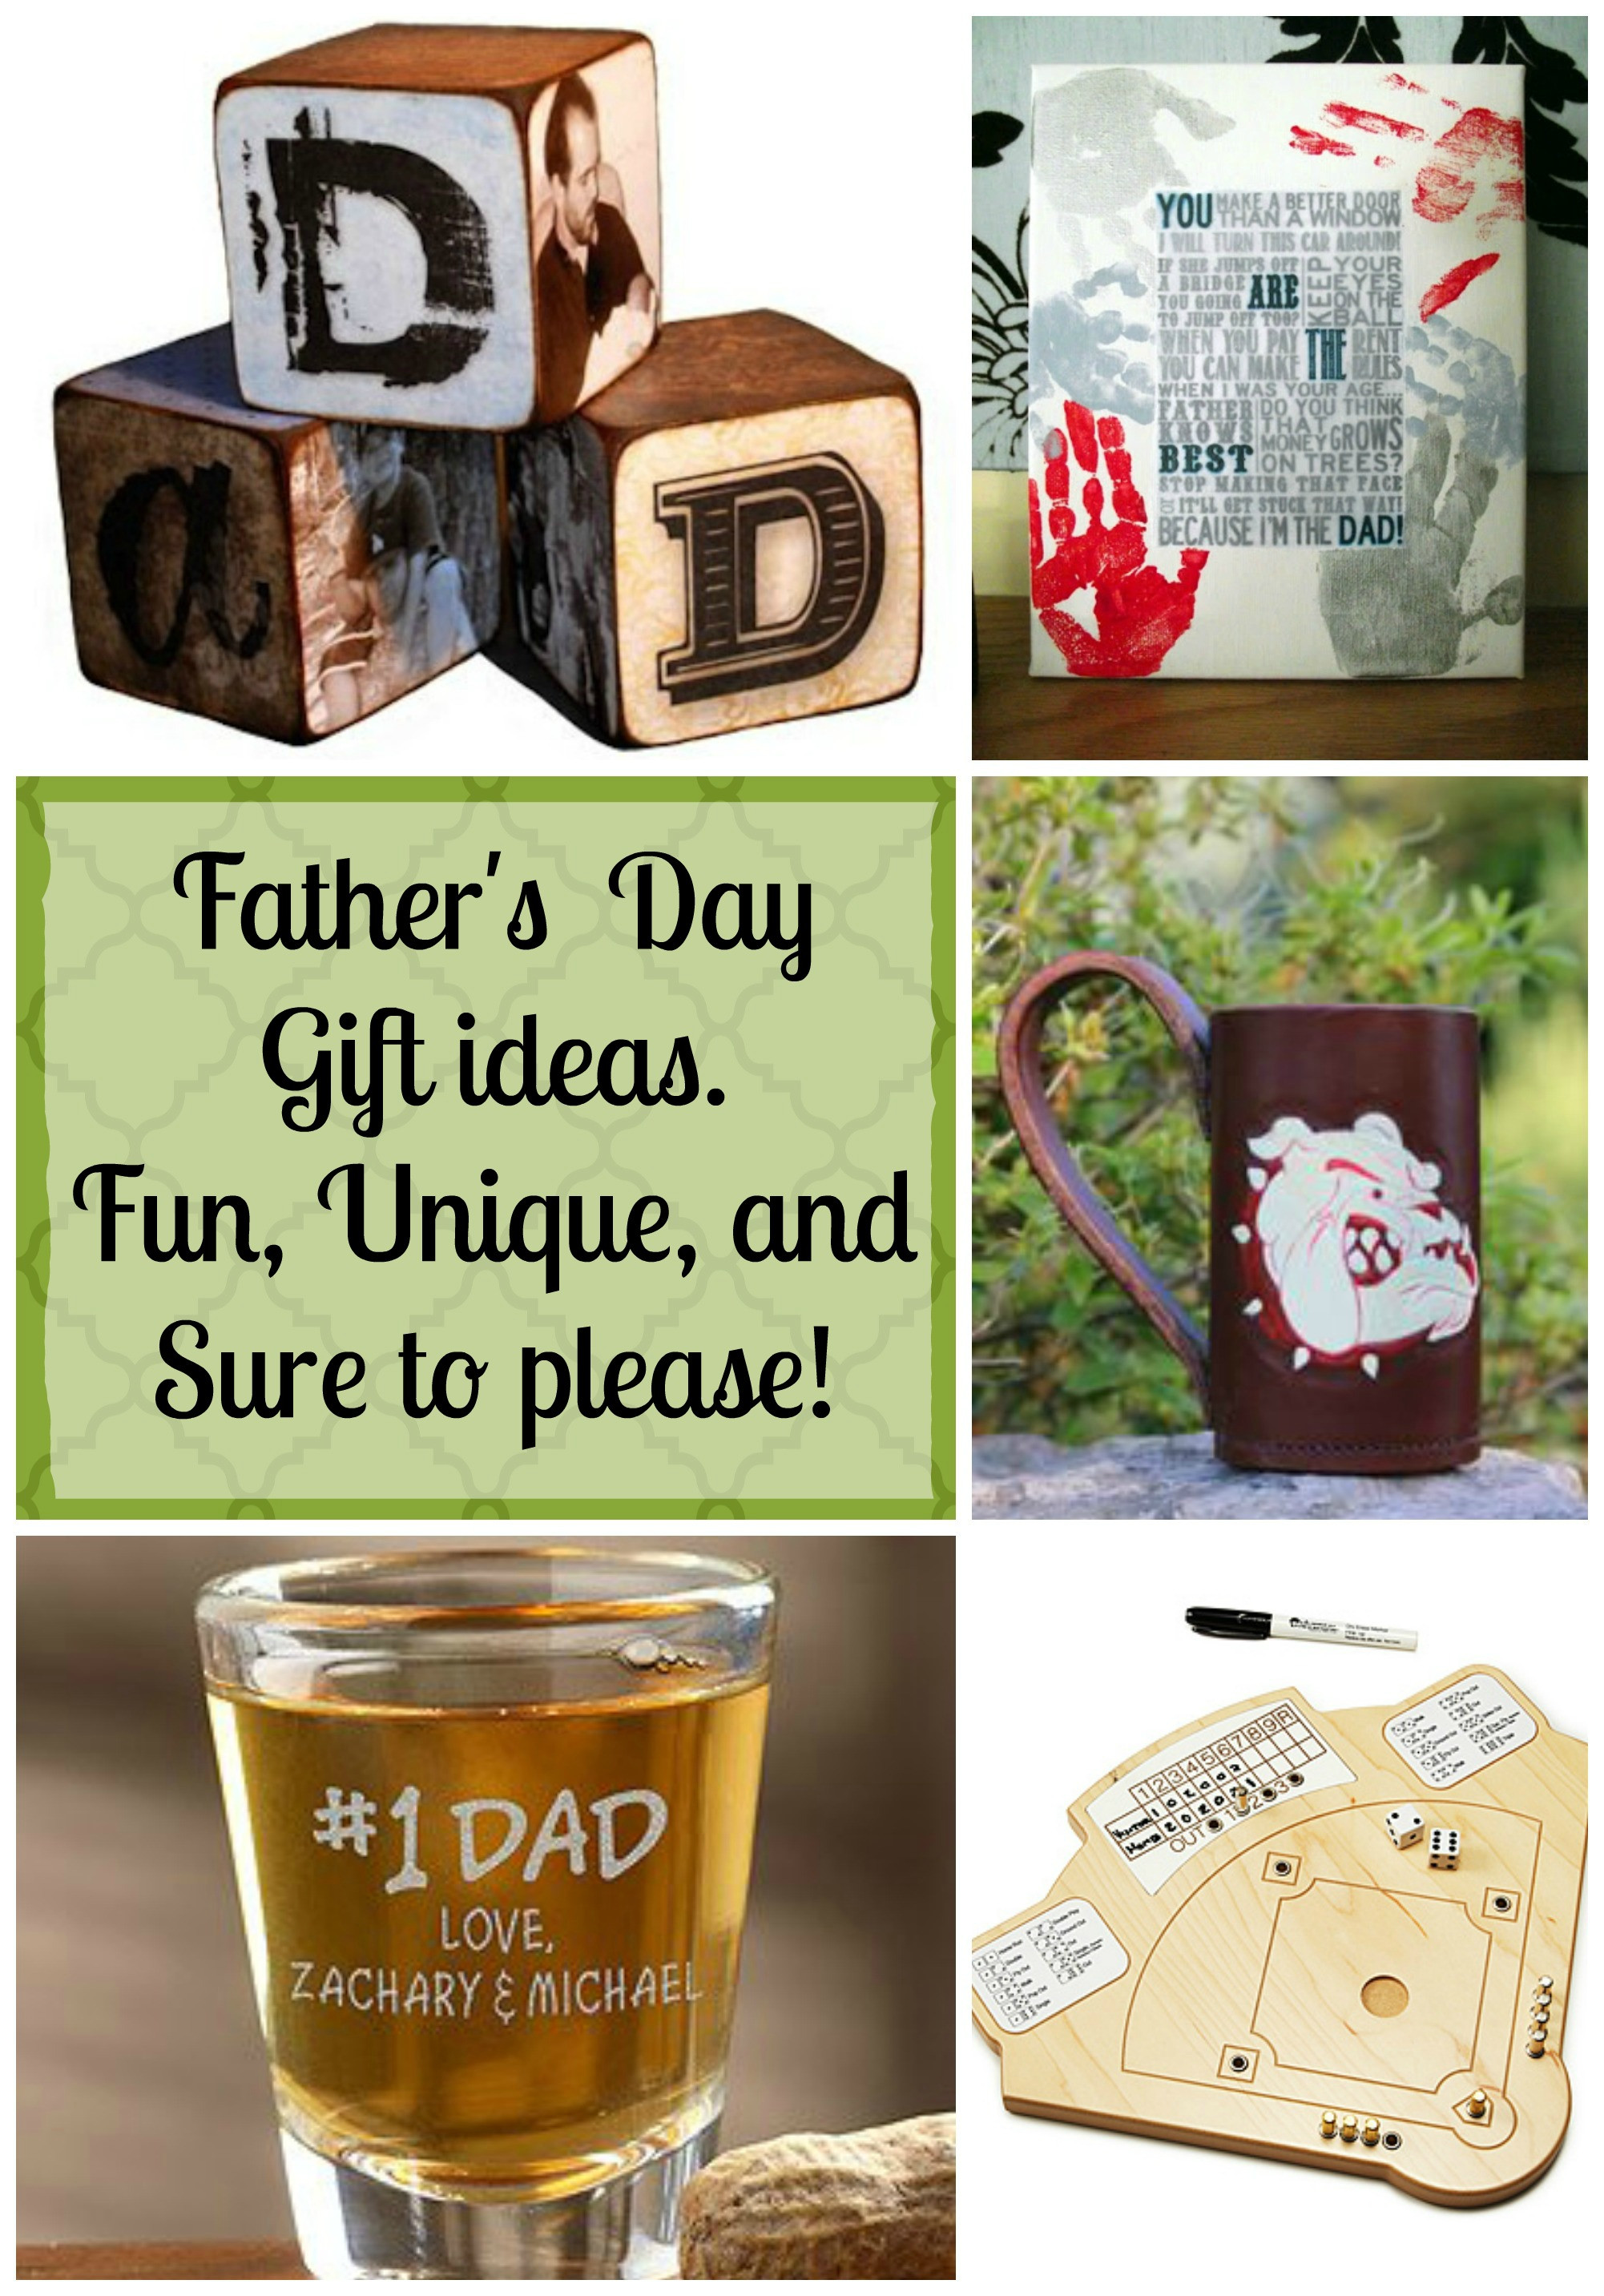 Best ideas about Unique Fathers Day Gift Ideas . Save or Pin 15 Great Father s Day Gift Ideas A Proverbs 31 Wife Now.